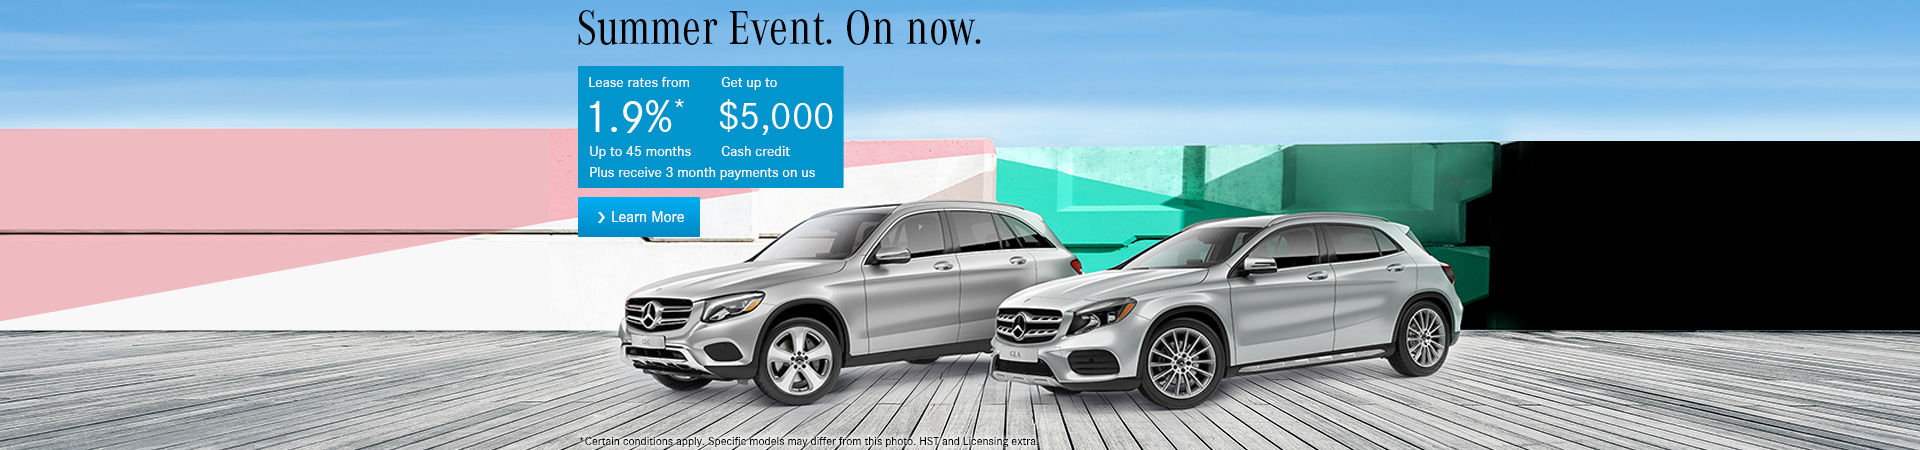 Smart 5 Portes Mercedes Benz Ottawa Downtown Your Mercedes Benz And Smart